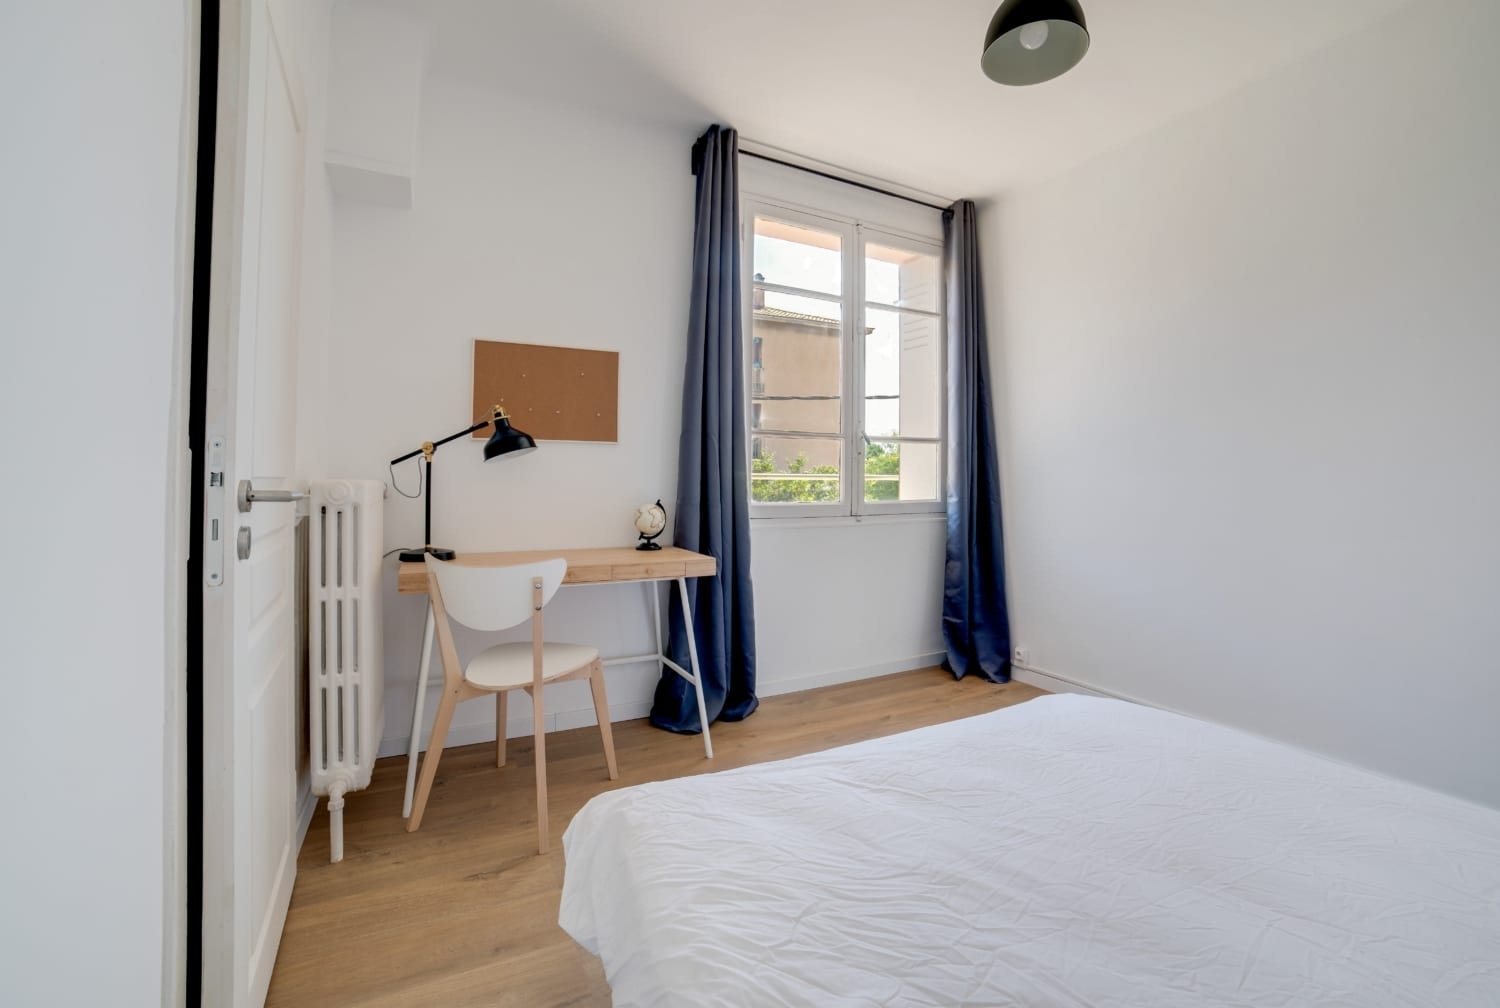 Shared room in Aix-en-Provence downtown